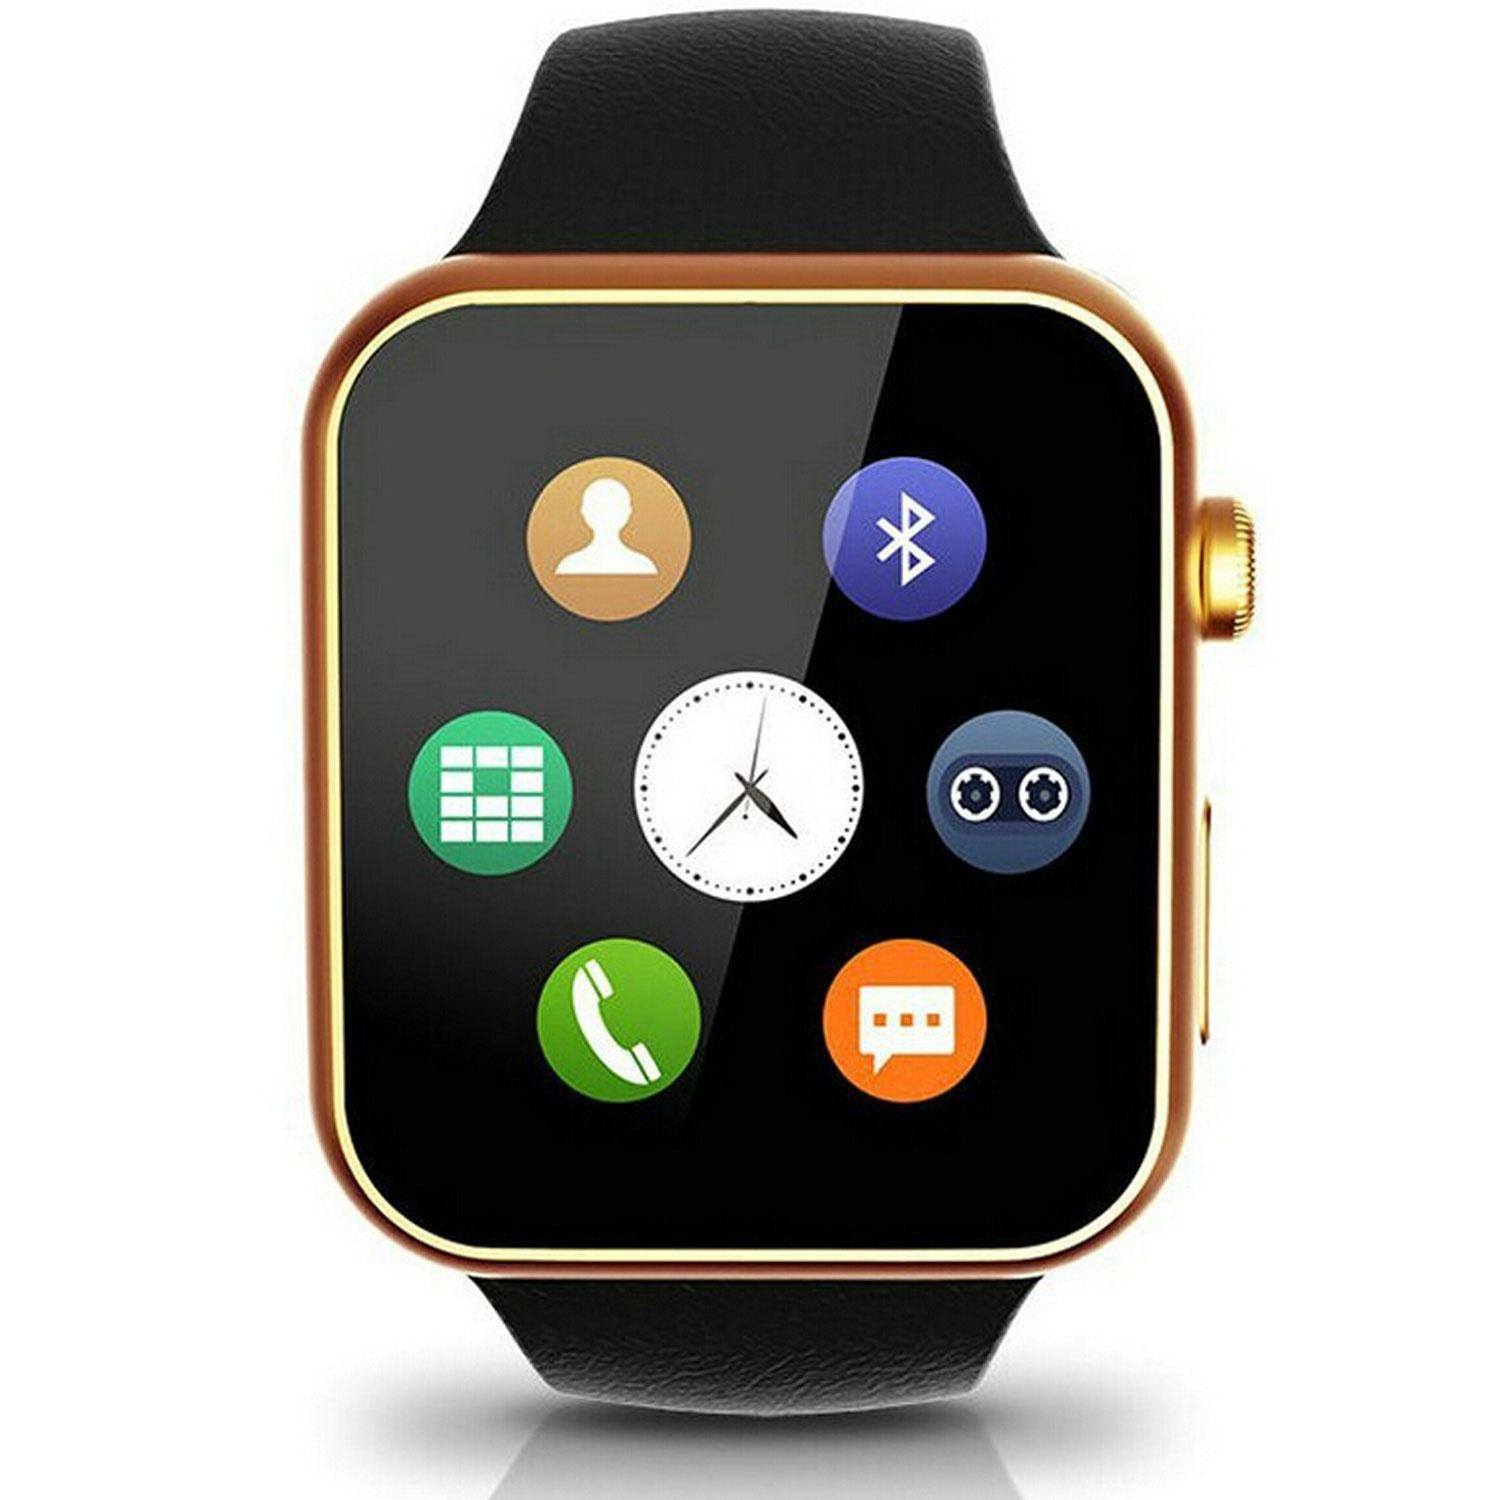 lincass smart watch phone sync smartphone call sms fitness tracker lincass smart watch phone sync smartphone call sms fitness tracker anti lost bluetooth bracelet watch for men women fit for ios android phon smart watches